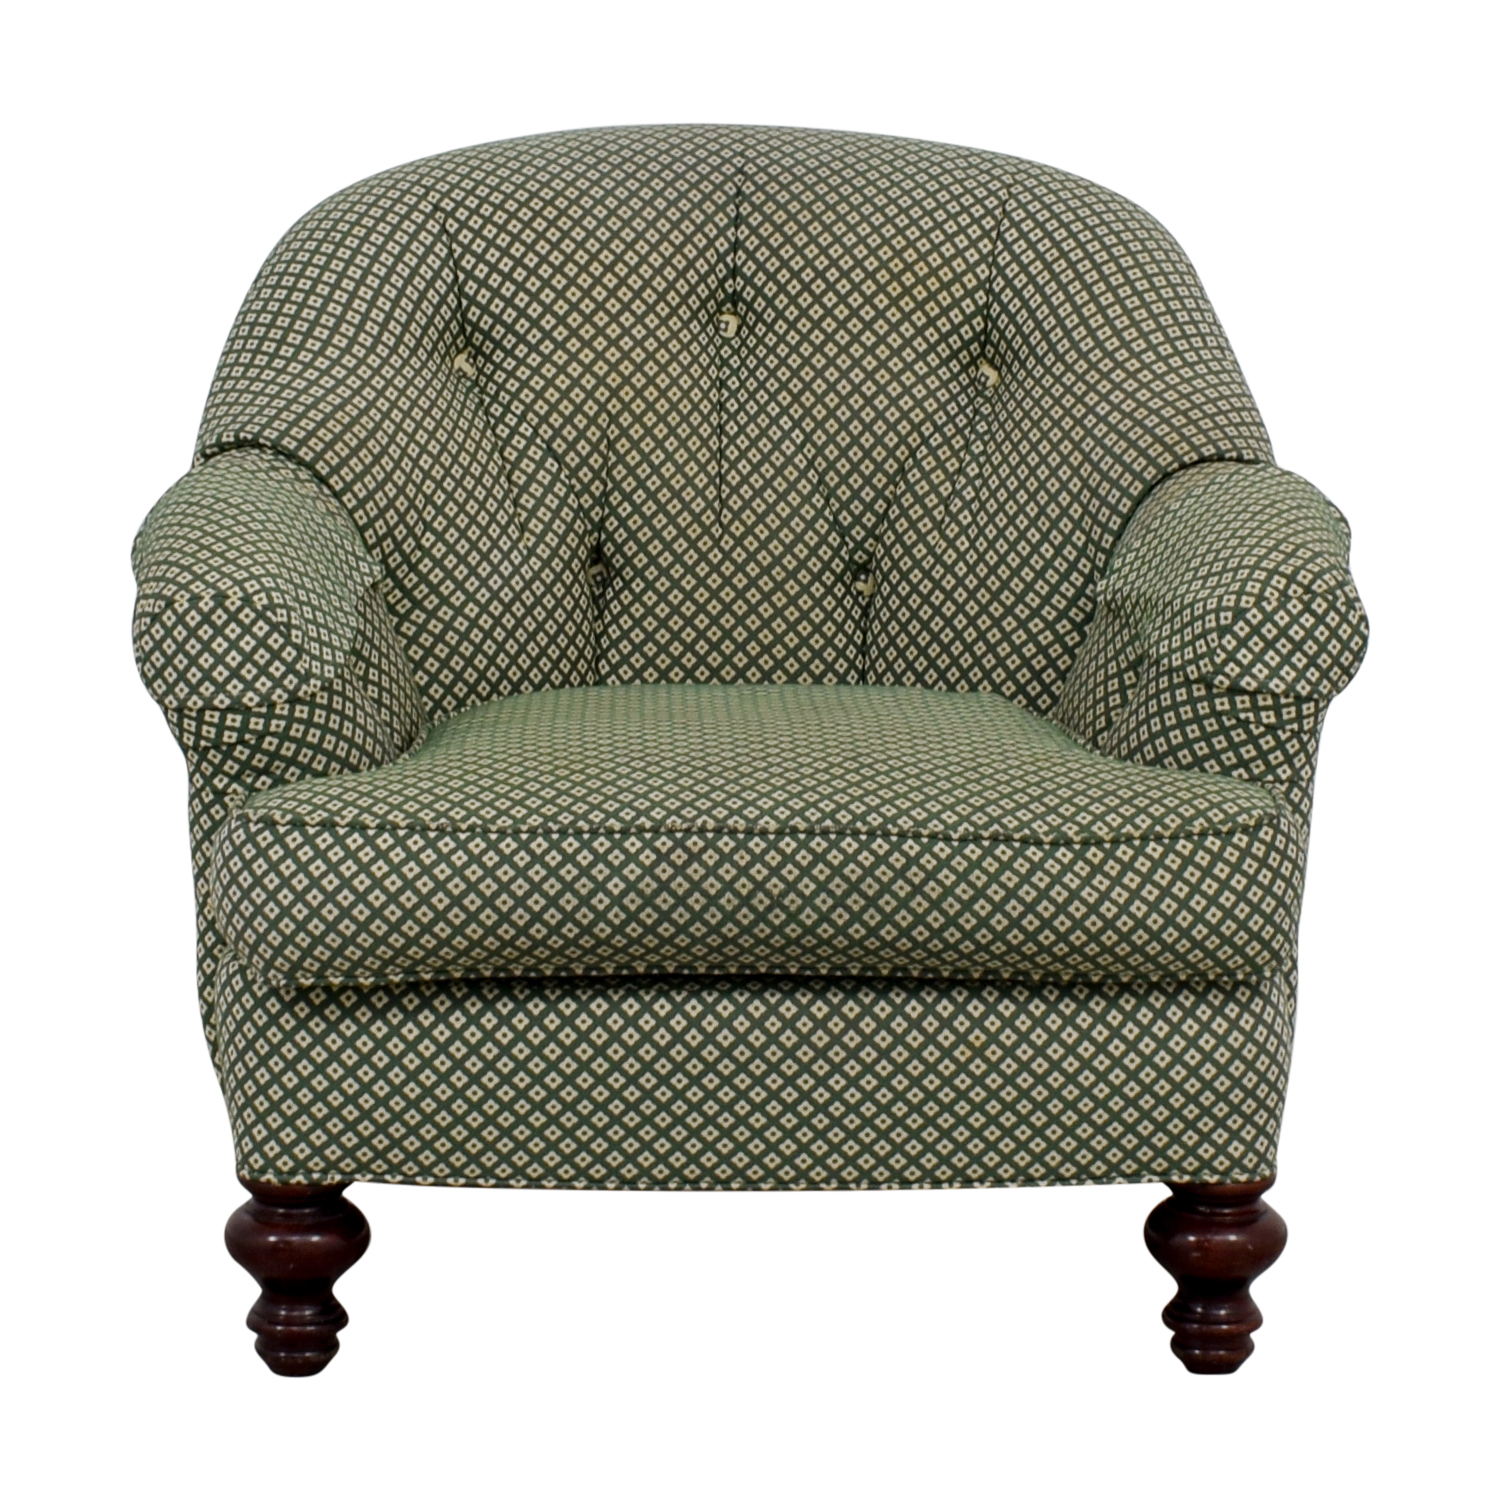 Sherrill Furniture Sherrill Furniture Tufted Green & White Armchair second hand